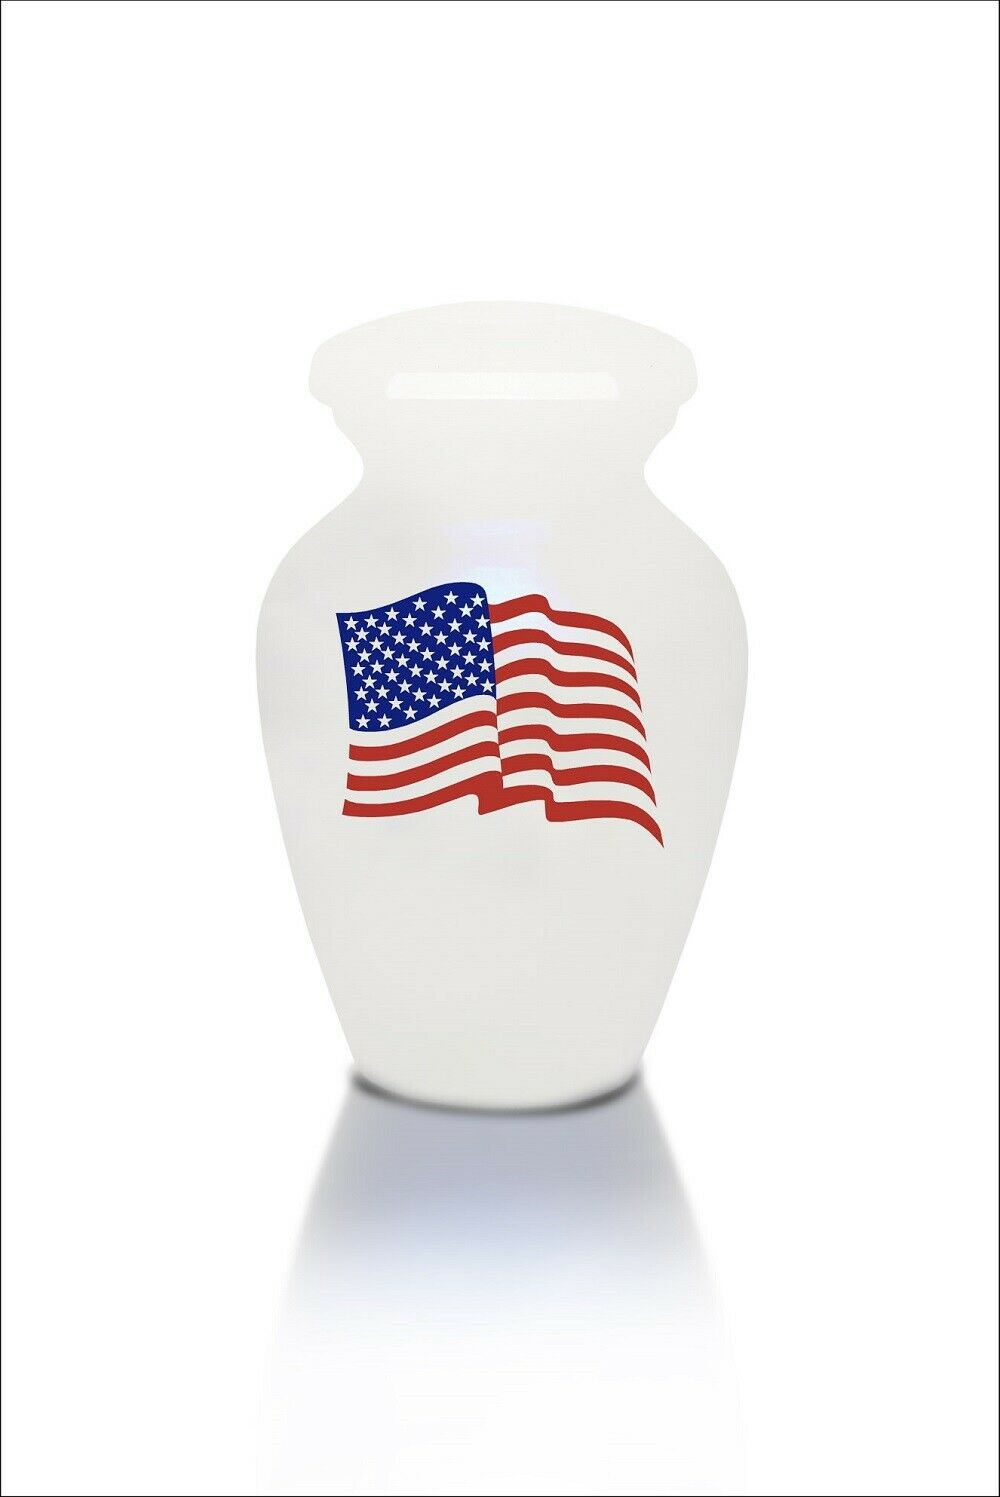 Extra Small 3 Cubic Inch White with American Flag Alloy Funeral Cremation Urn